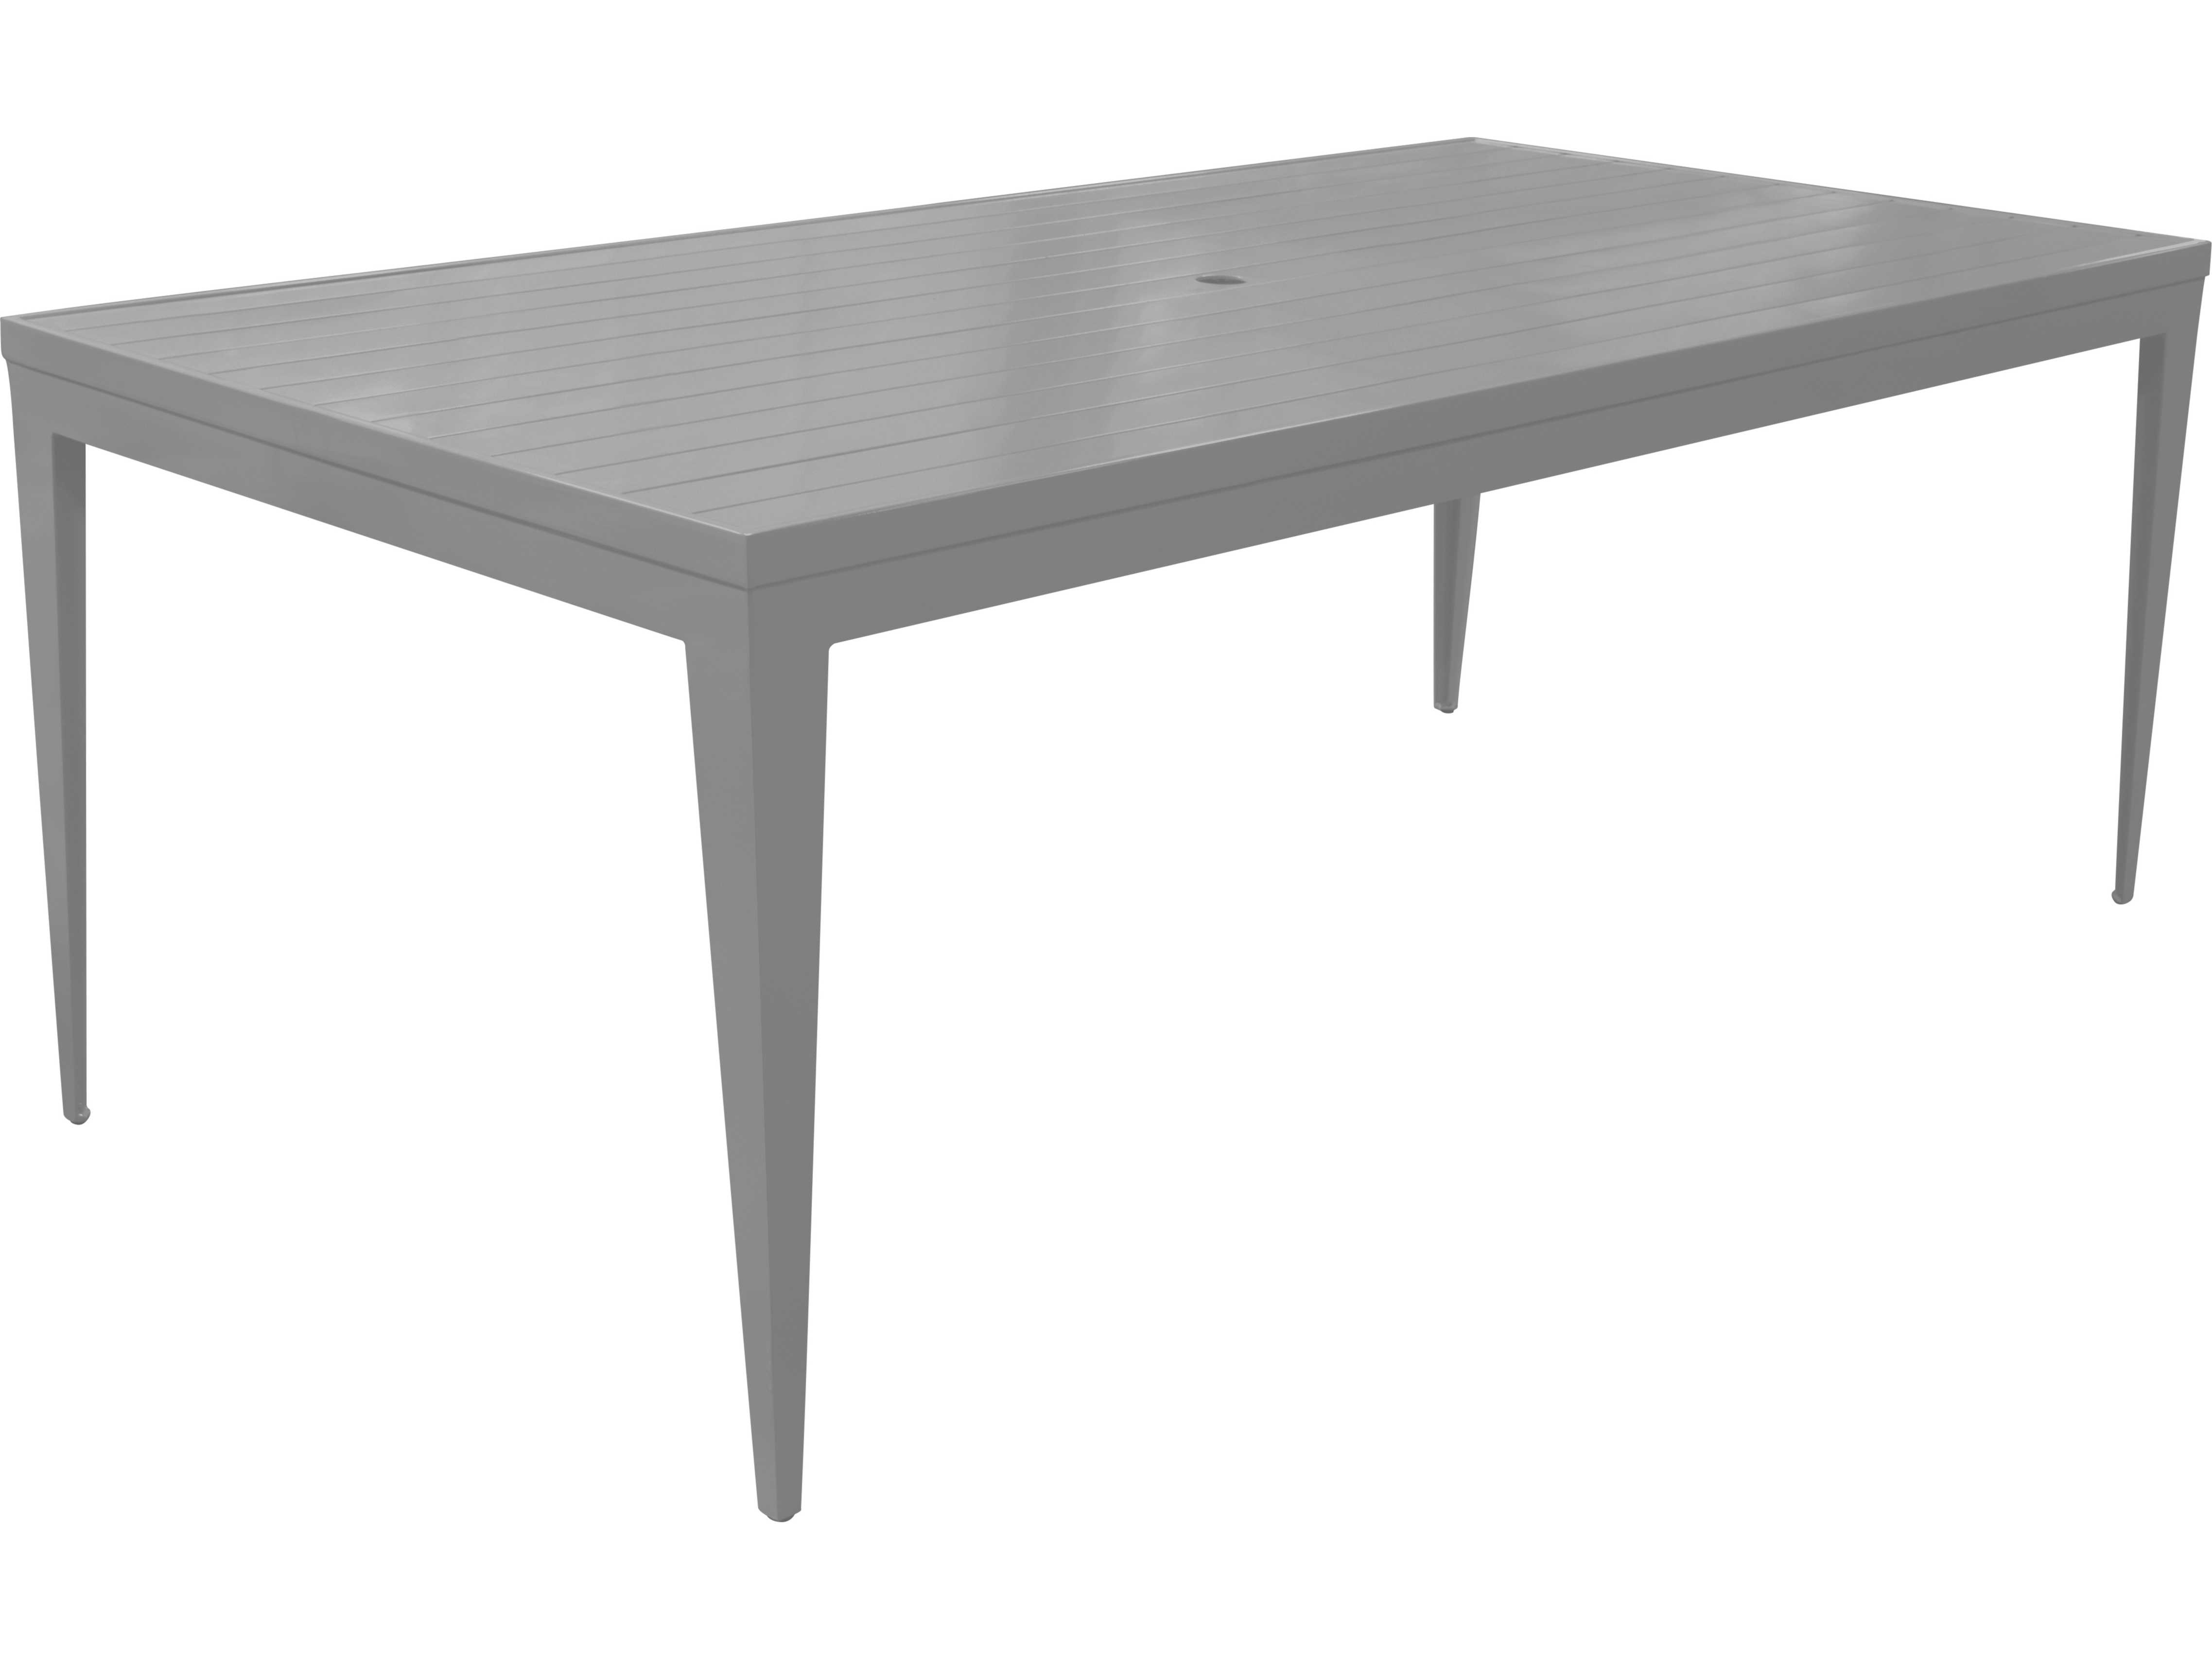 Source Outdoor Furniture South Beach Aluminum X Rectangular - 72 x 72 square dining table